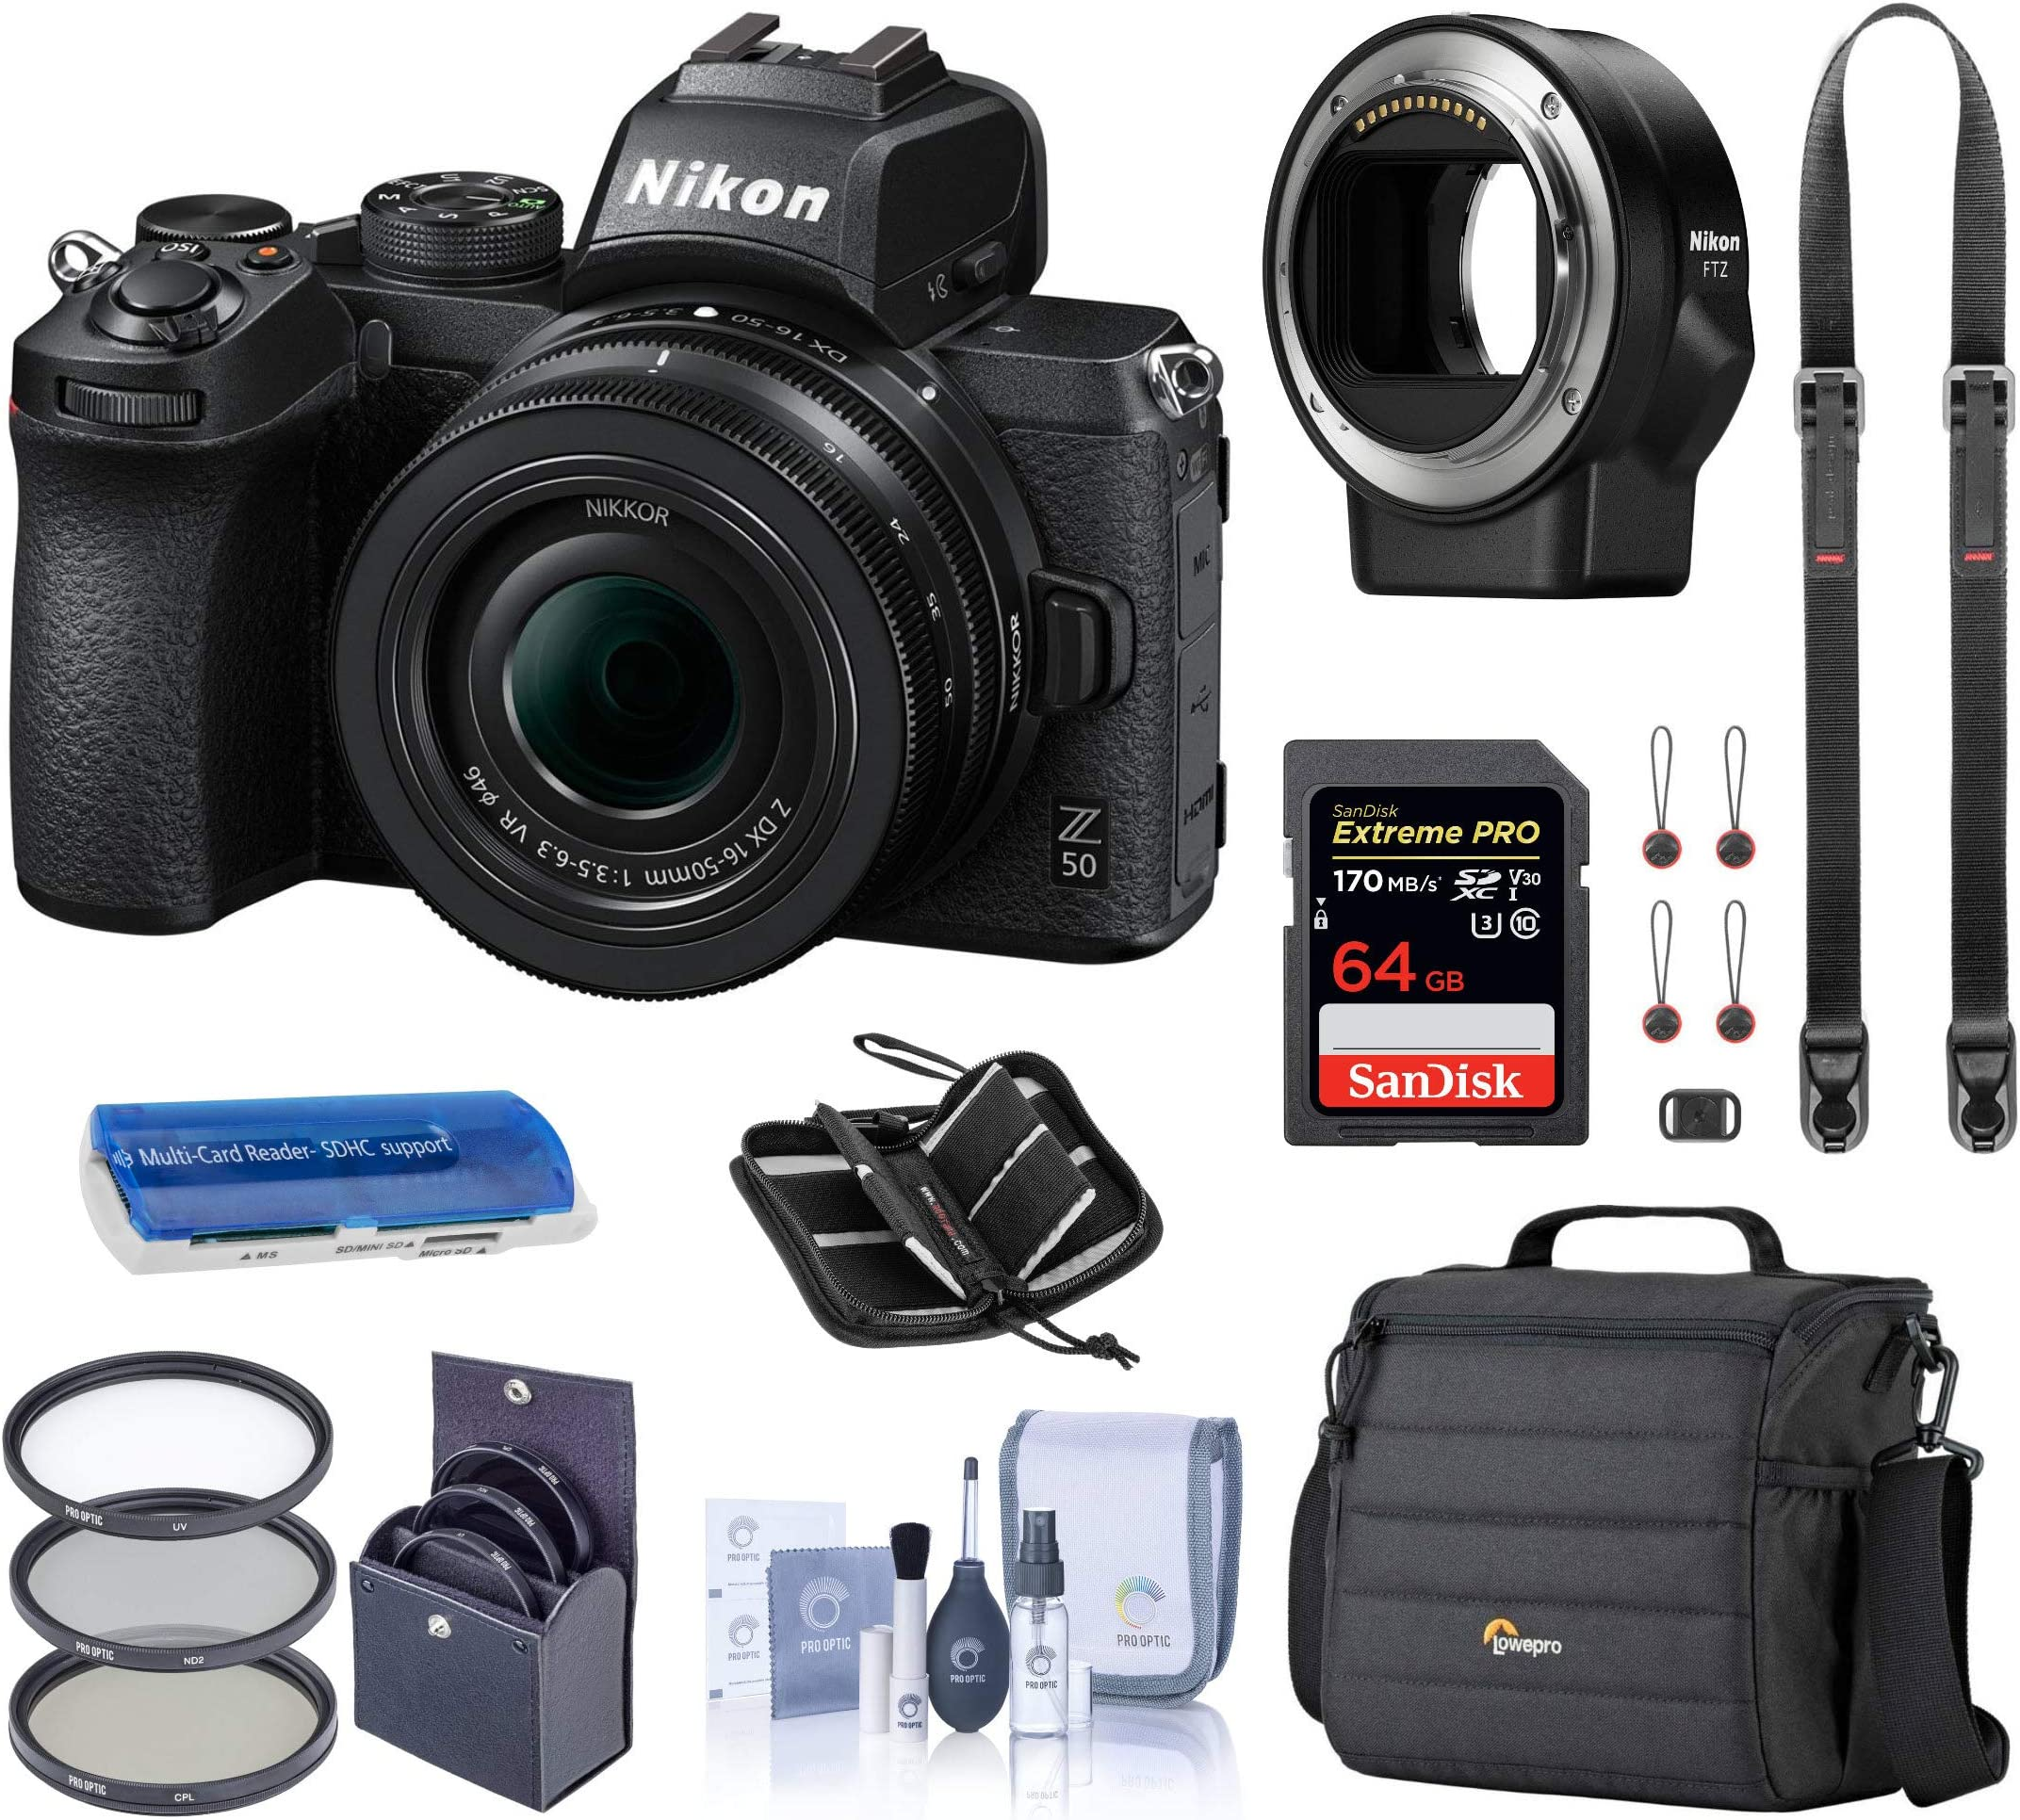 Nikon Z 50 DX-Format Mirrorless Camera with 16-50mm VR Lens, Essential Bundle with FTZ Mount Adapter, Case, Filter Kit, 64GB SD Card, Neck Strap and Accessories